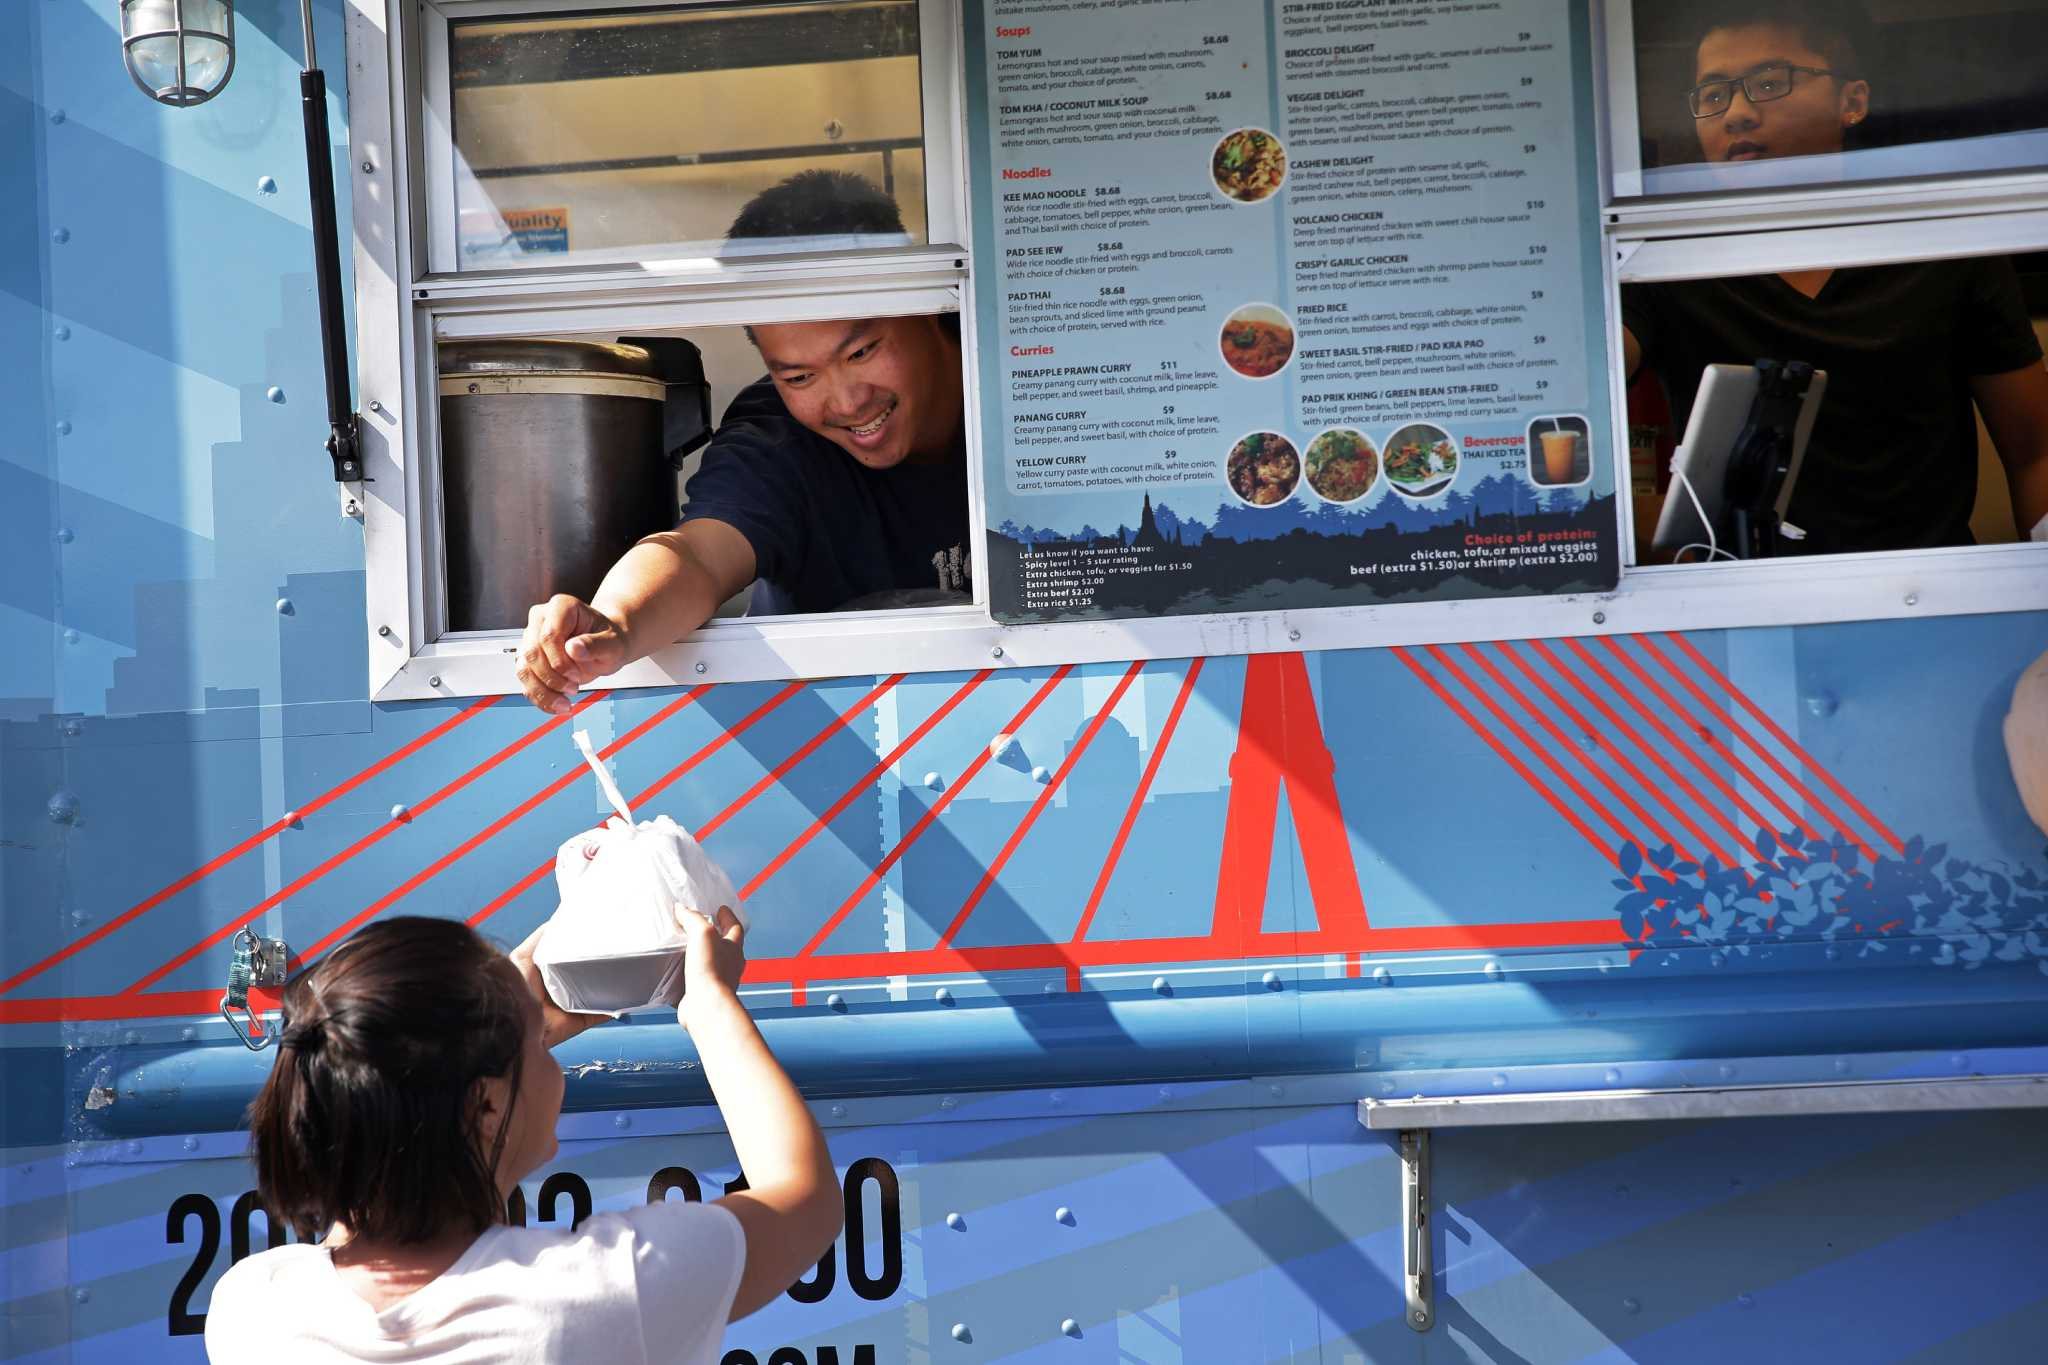 Seattle food trucks: Hilariously delicious - seattlepi.com